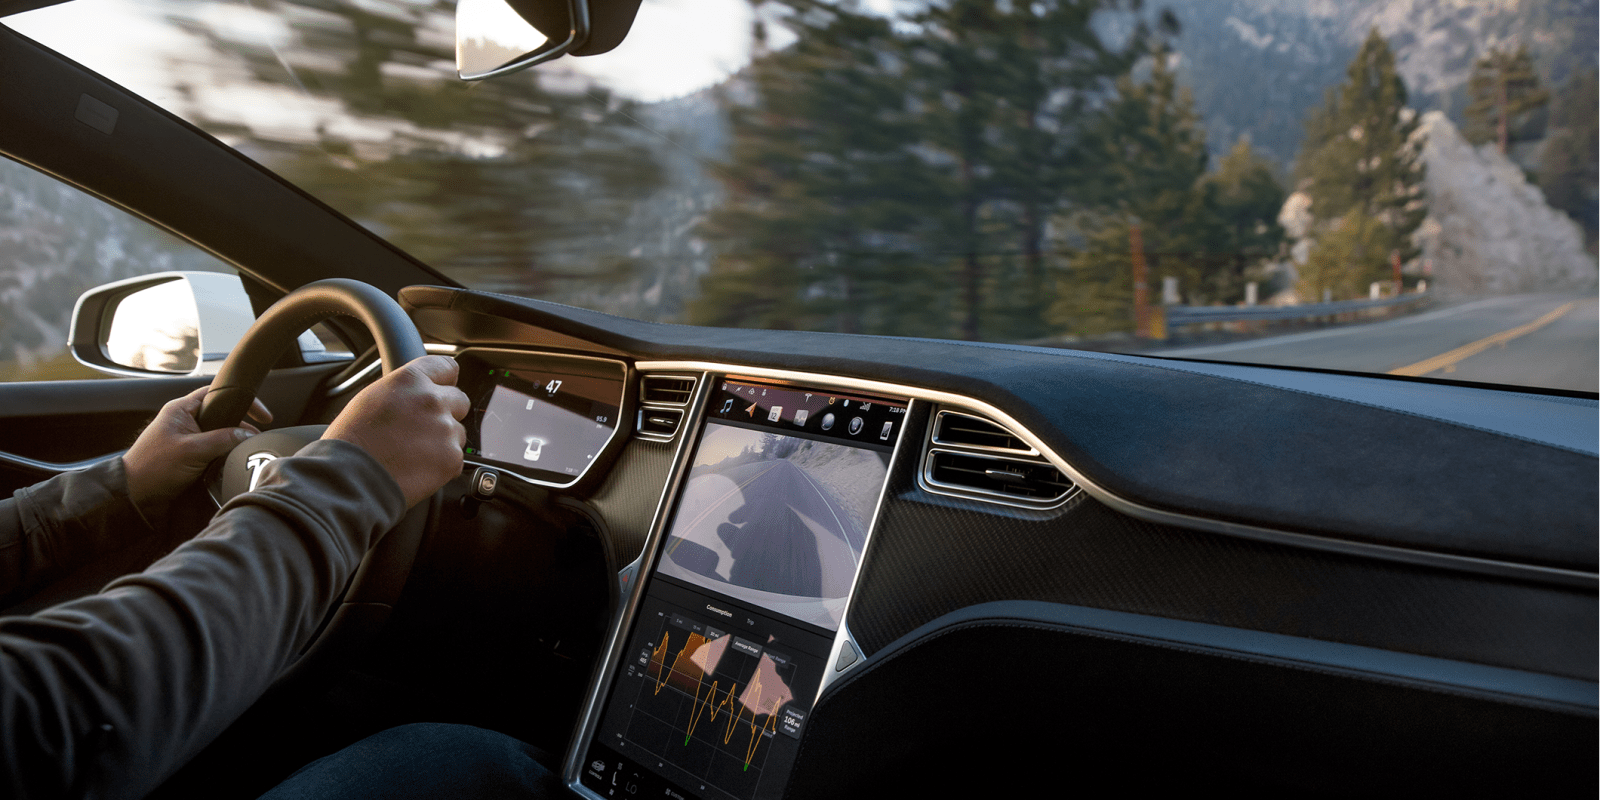 Tesla pushes new Autopilot 2.0 update with truly 'silky smooth' control algorithm